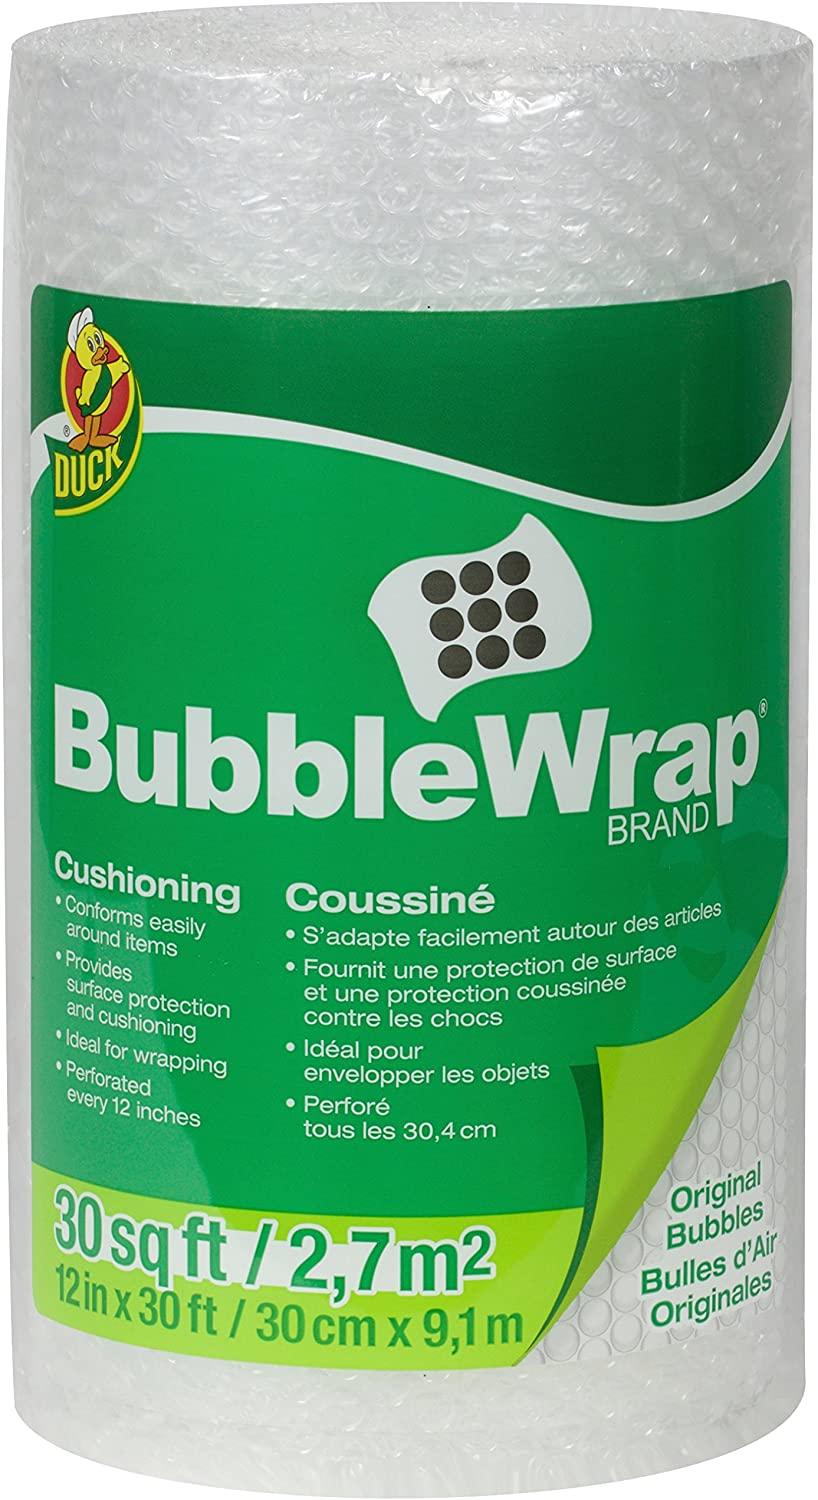 Duck Brand Bubble Wrap Original Protective Packaging Render